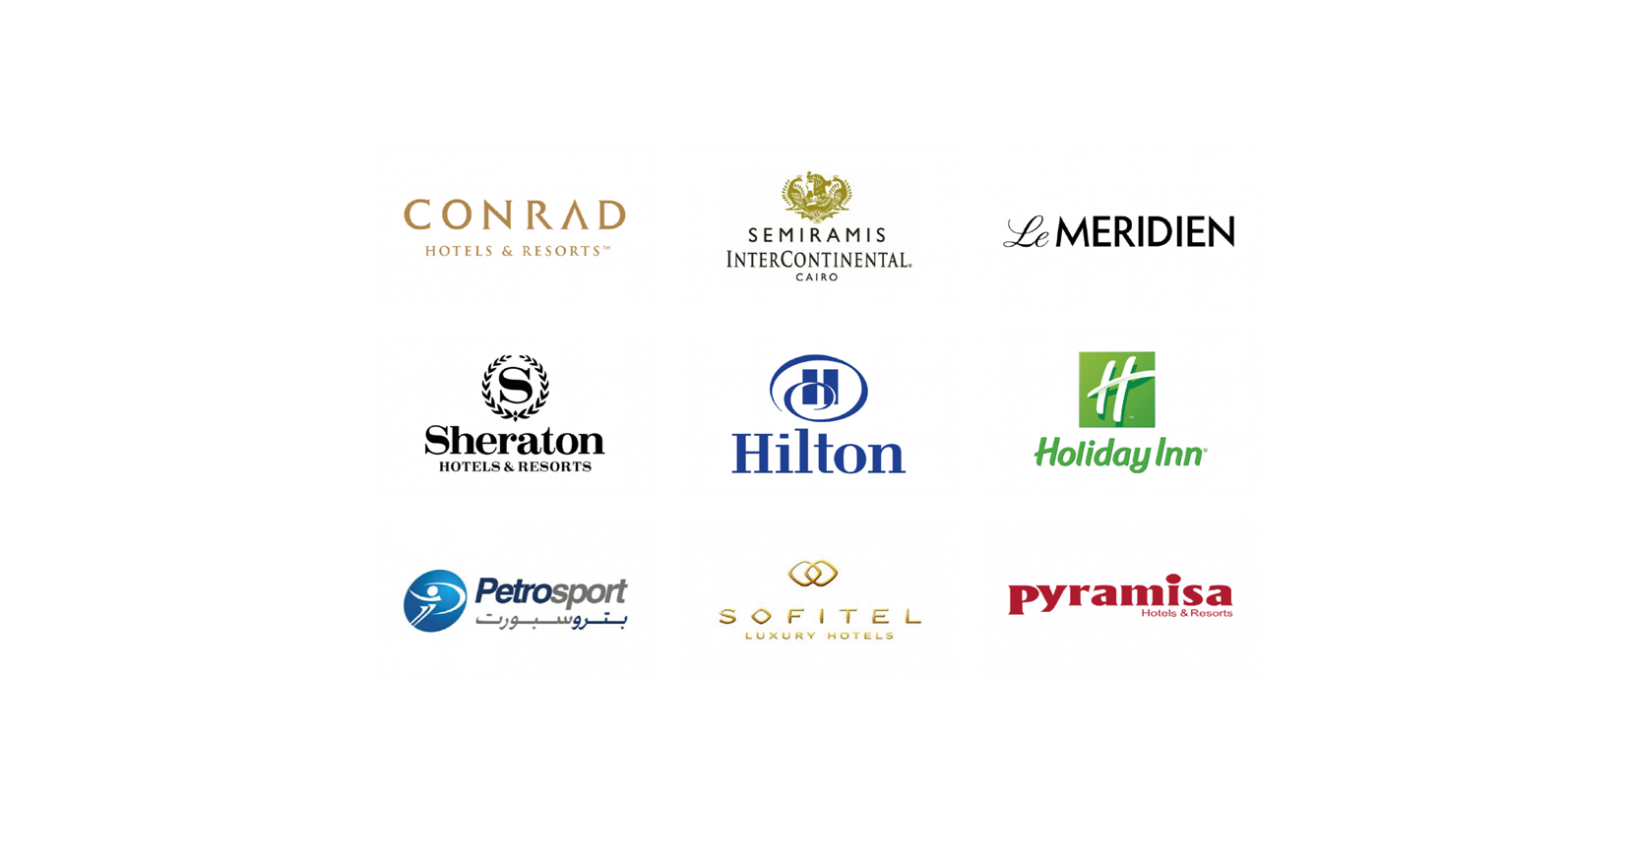 hartmann clients hotels